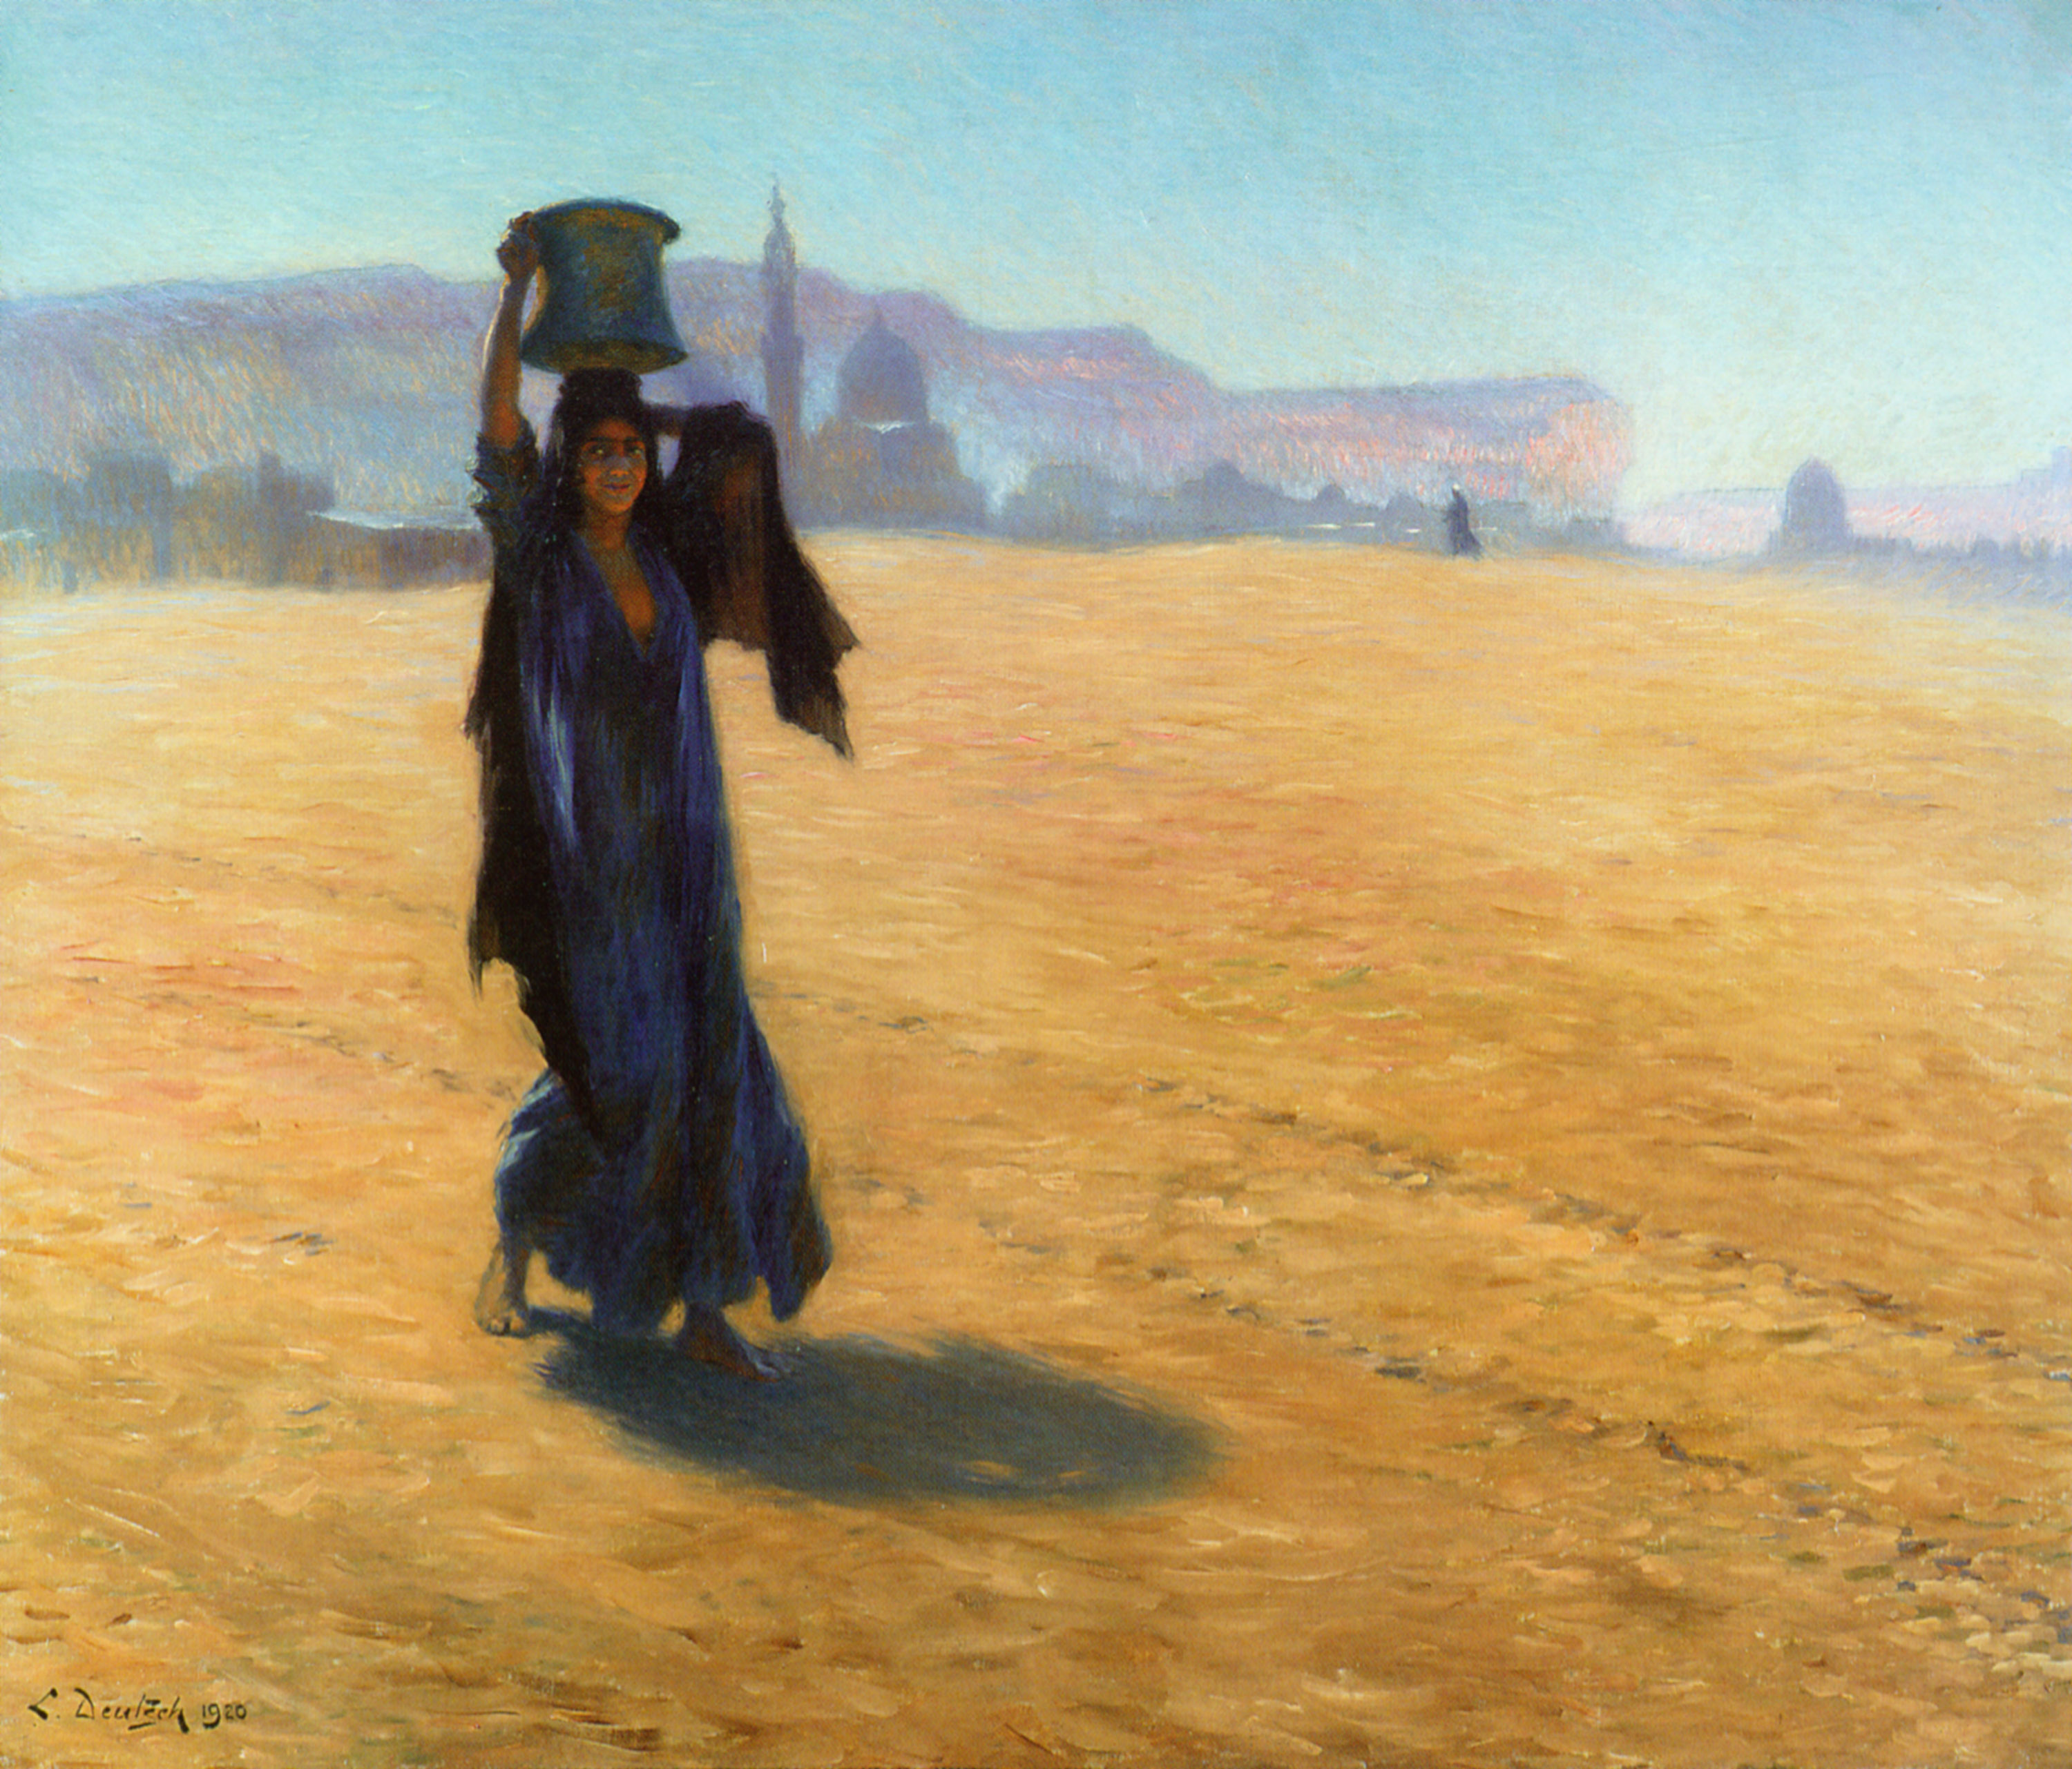 The Water Carrier :: Ludwig Deutsch - Arab women (Harem Life scenes) in art  and painting ôîòî